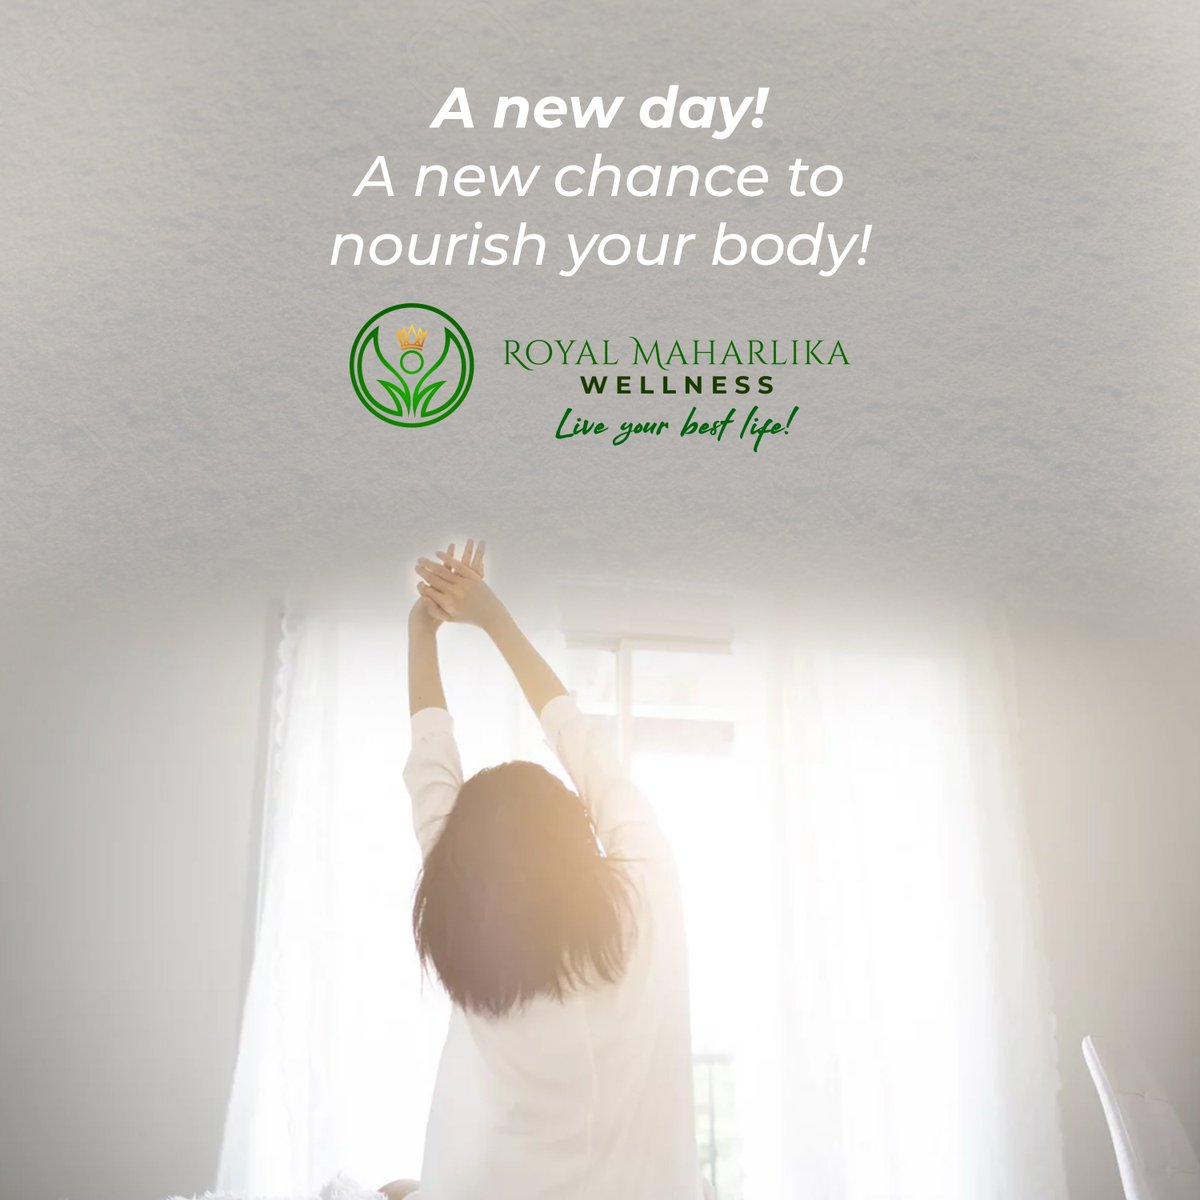 Let's be a part of your wellness journey. Talk to us to know how we can work together!  Happy Monday  #RoyalMaharlika #Liveyourbestlife https://t.co/a6BTc2z8W0